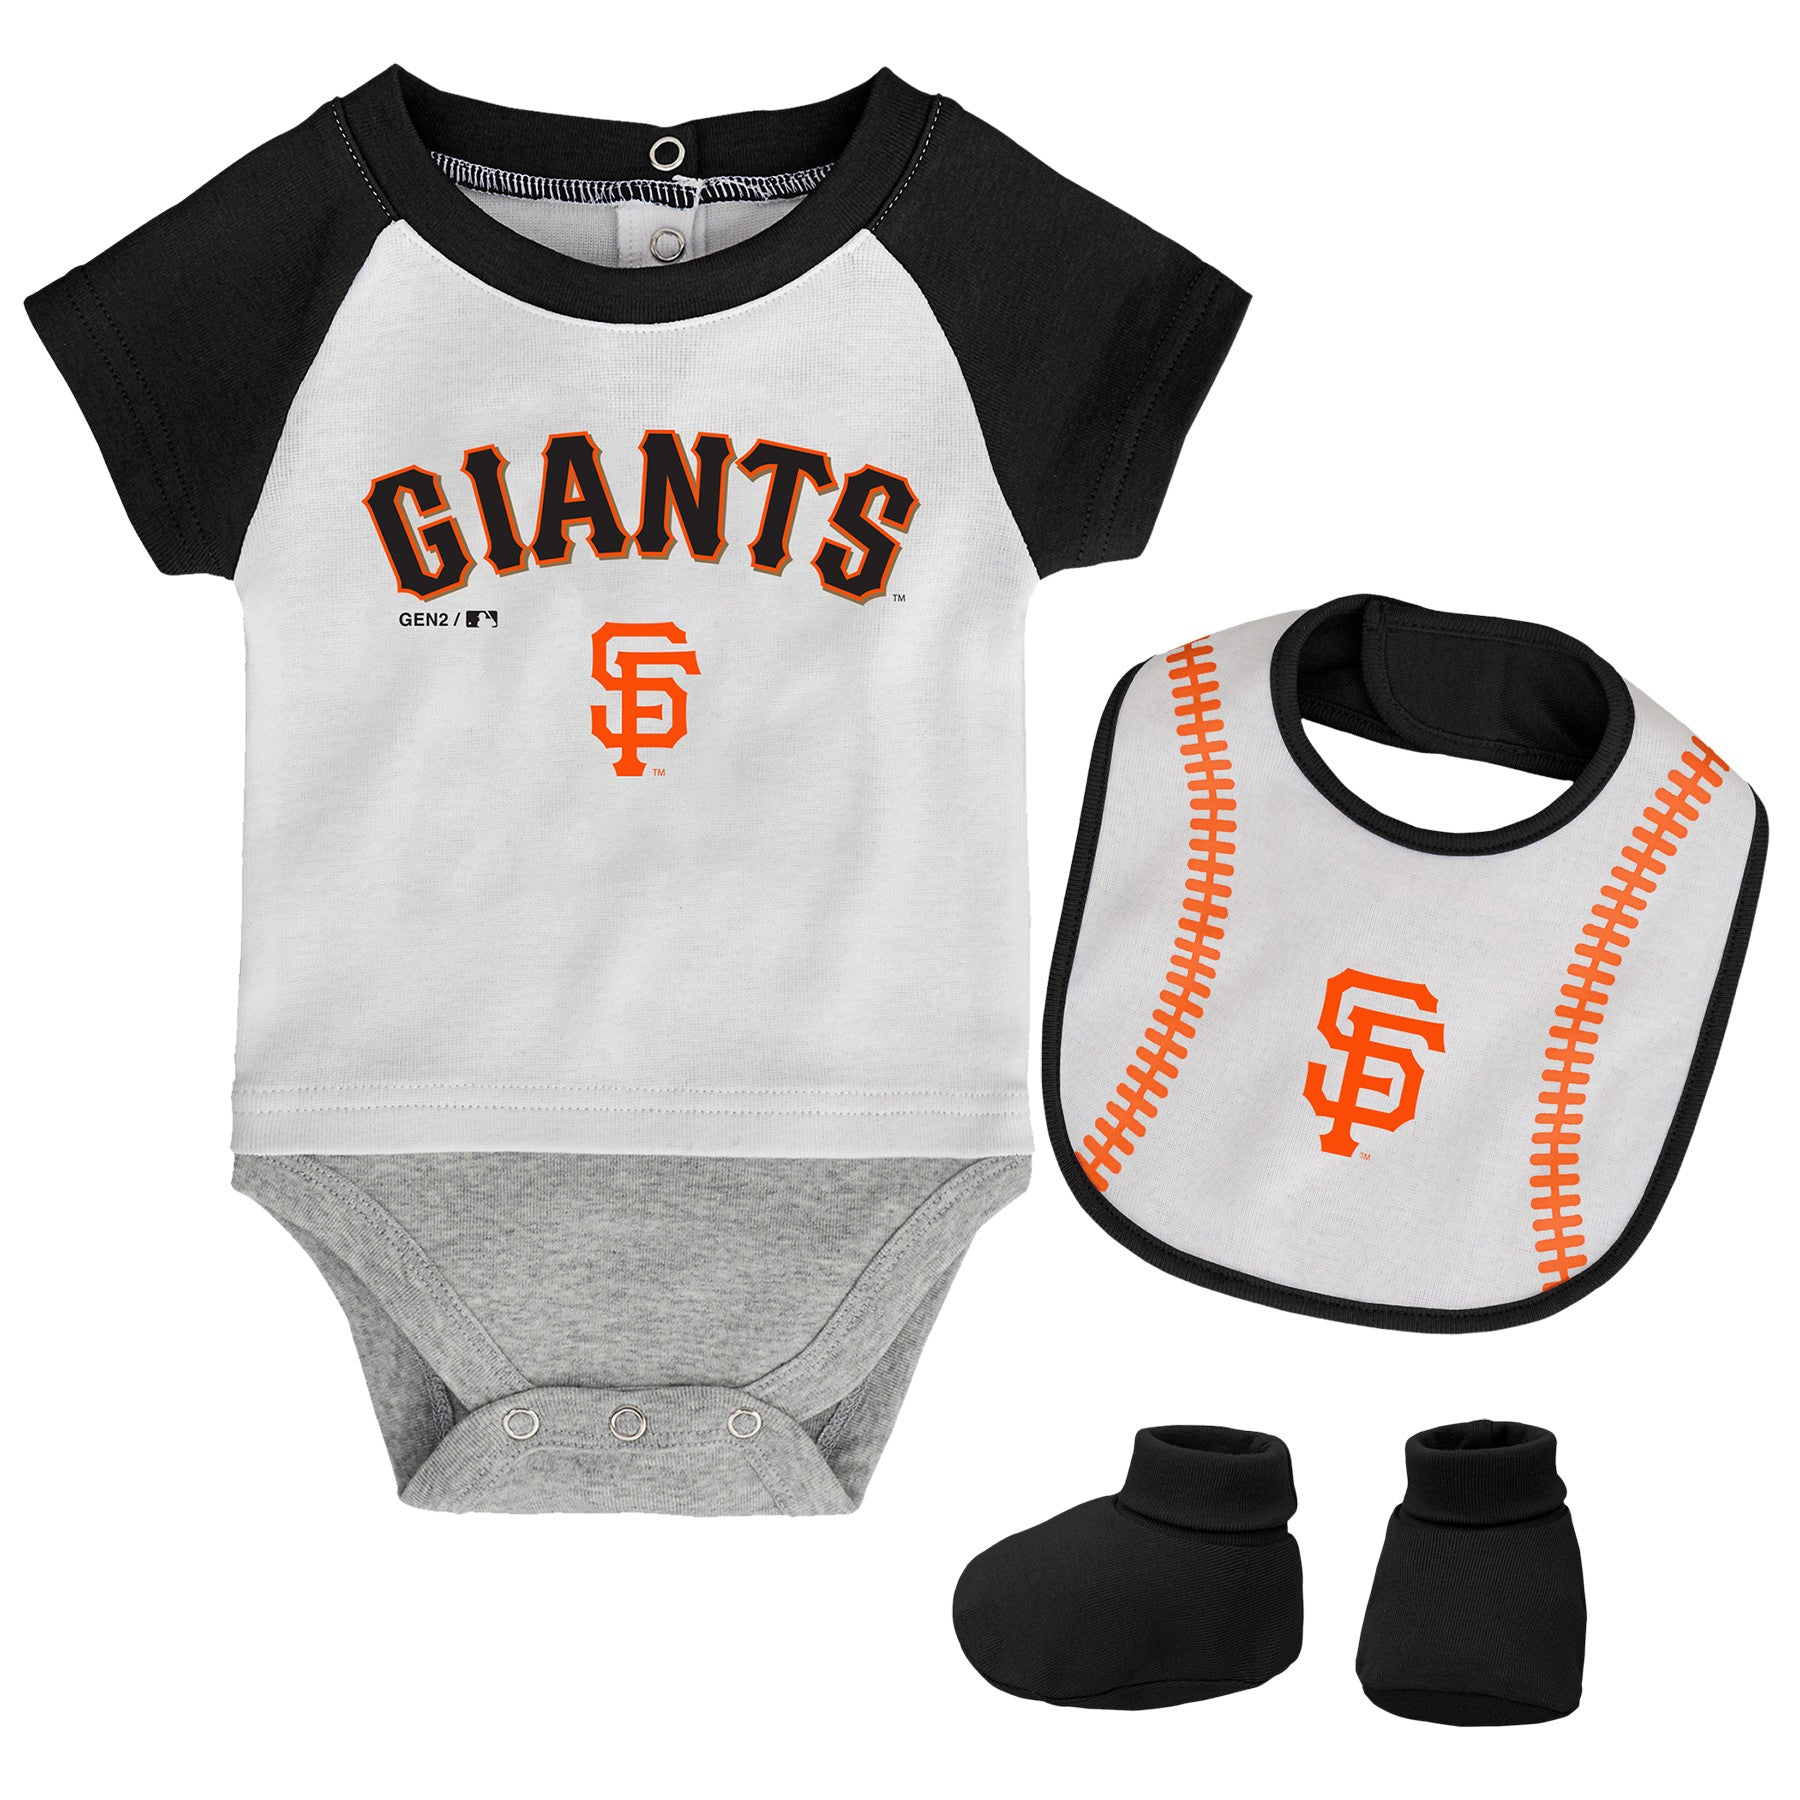 affdbd728 San Francisco Giants Baby Outfit – babyfans